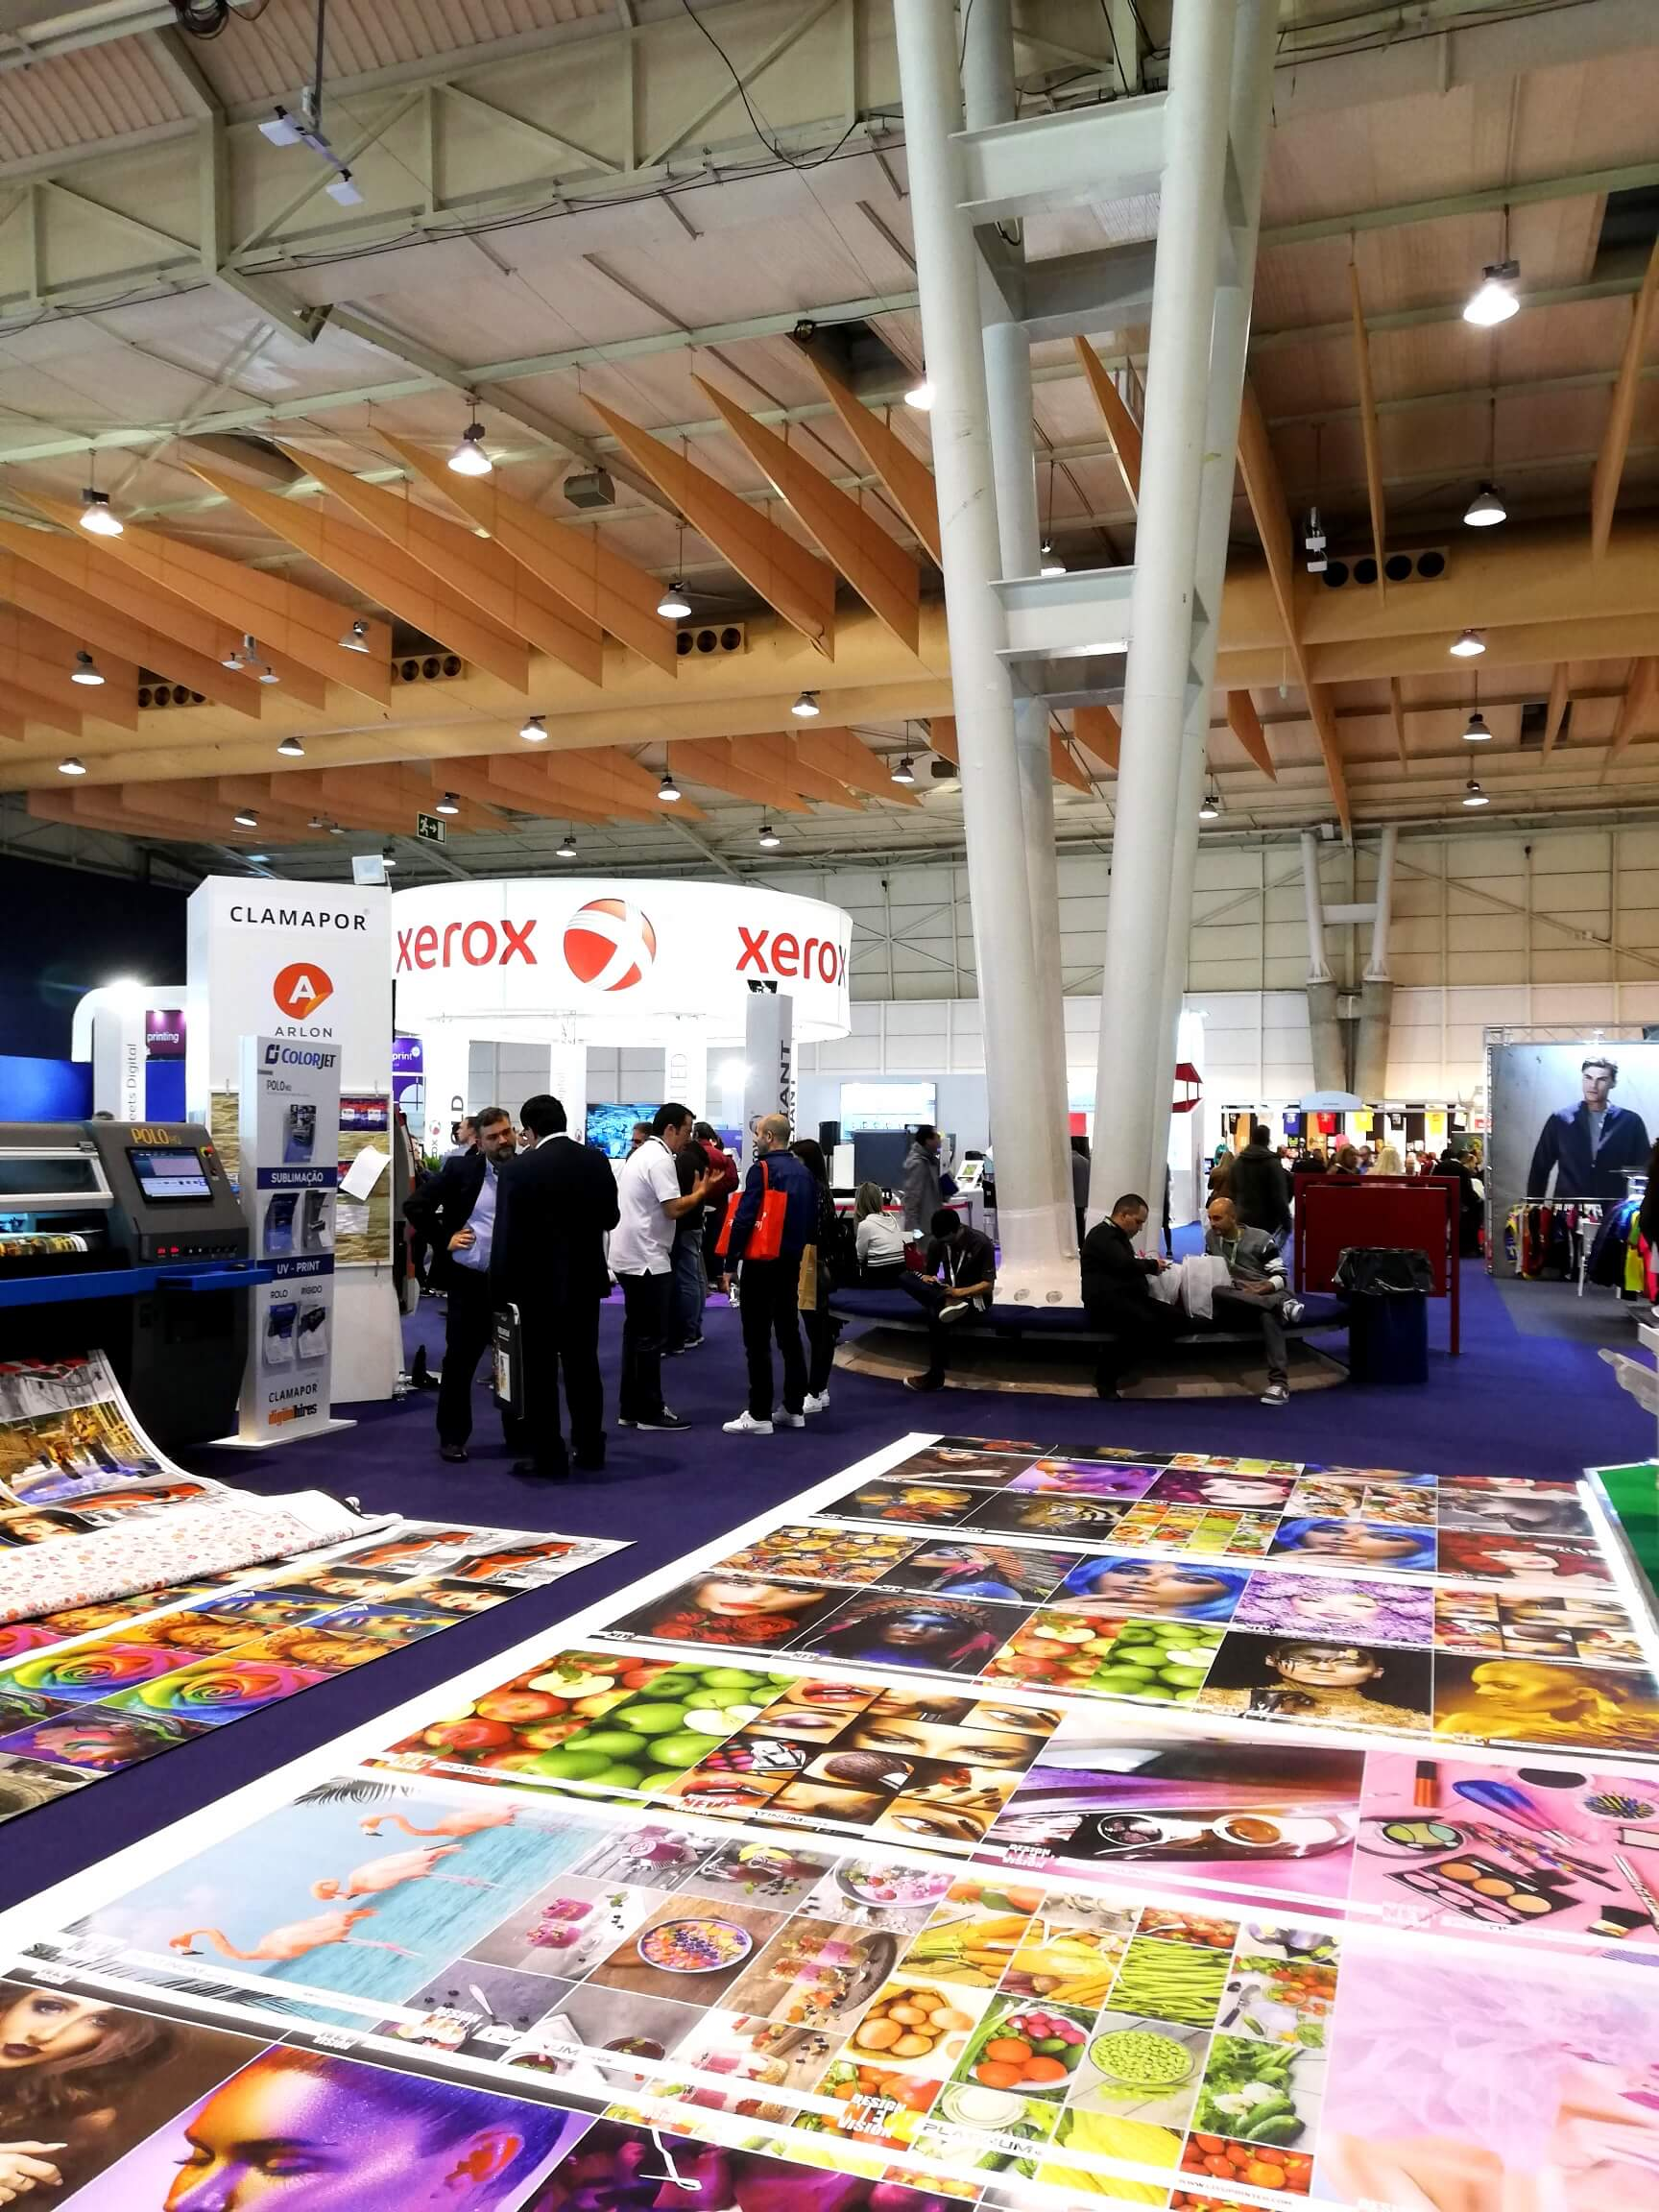 How to optimize contact collection at trade fairs? A Portugal Print 2019 case study